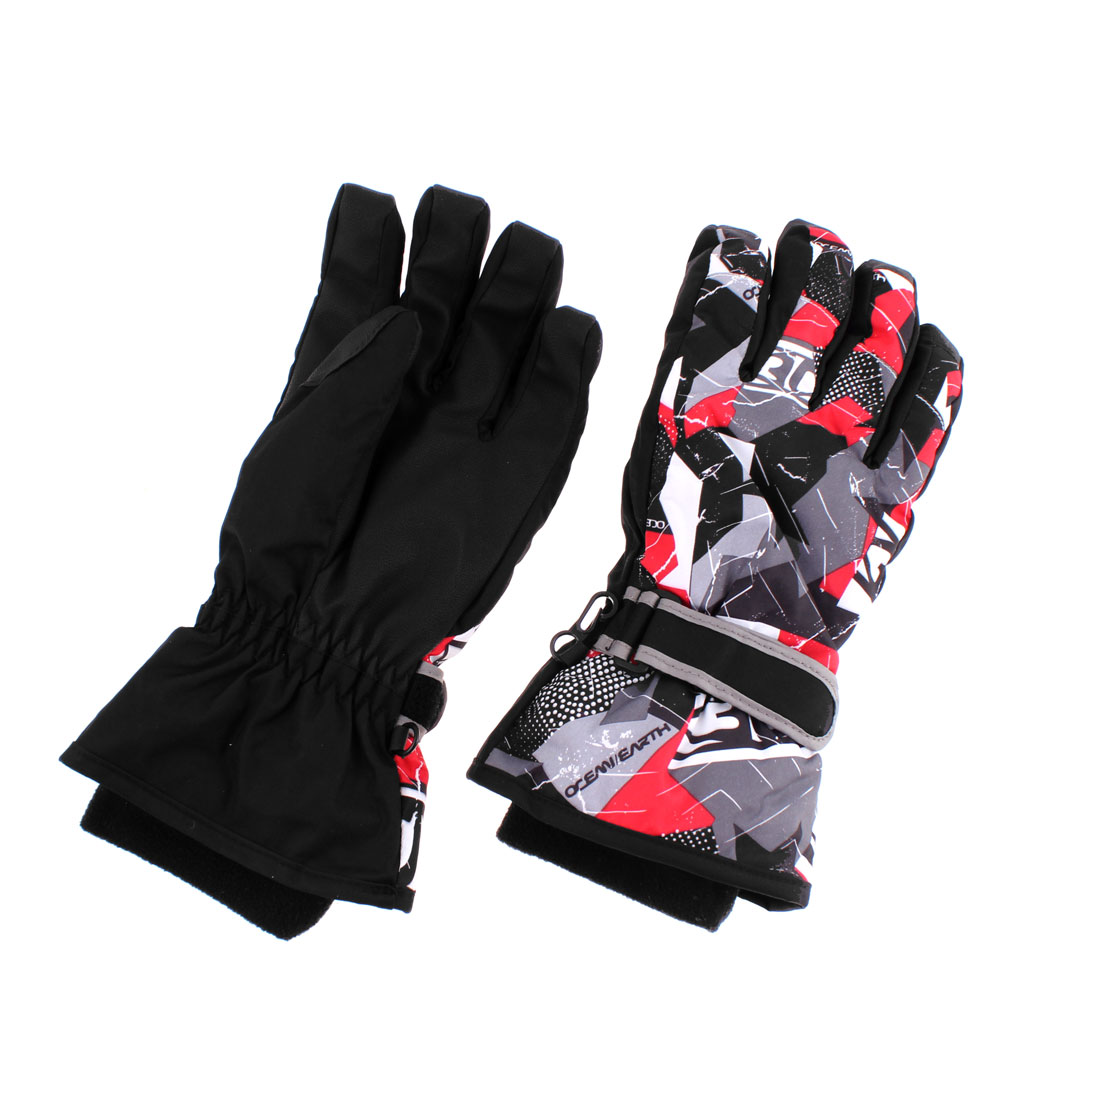 Adults Winter Sports Outdoors Skiing Snowboard Ski Gloves Black L Pair